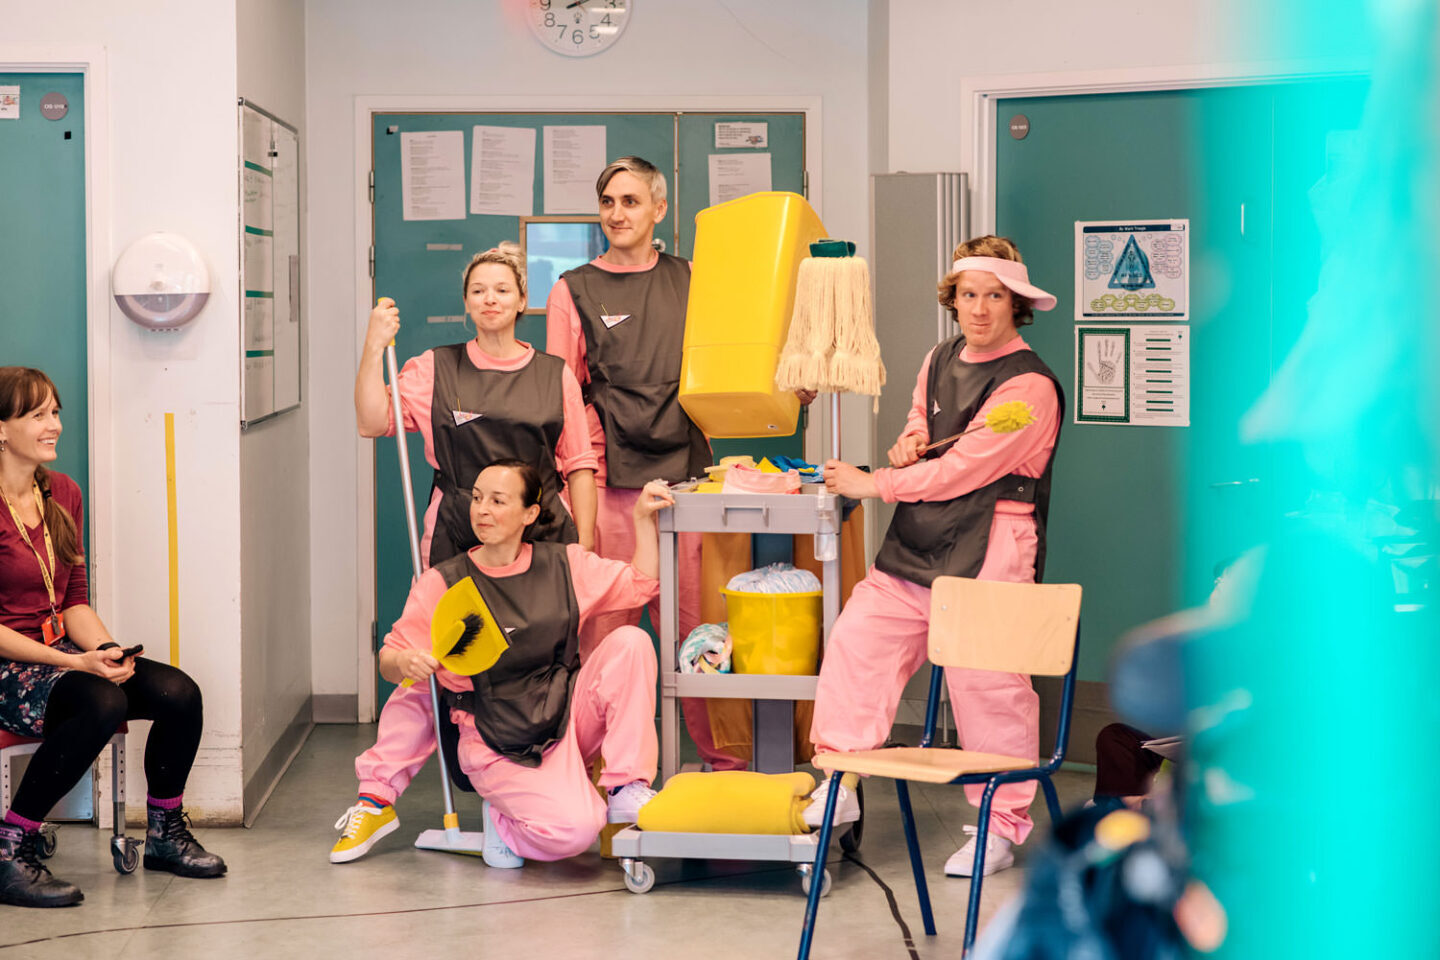 MESS - four performers dressed in pink tracksuits and grey tabards around a cleaning trolley with various cleaning implements in the doorway of a classroom. a teacher looks on smiling